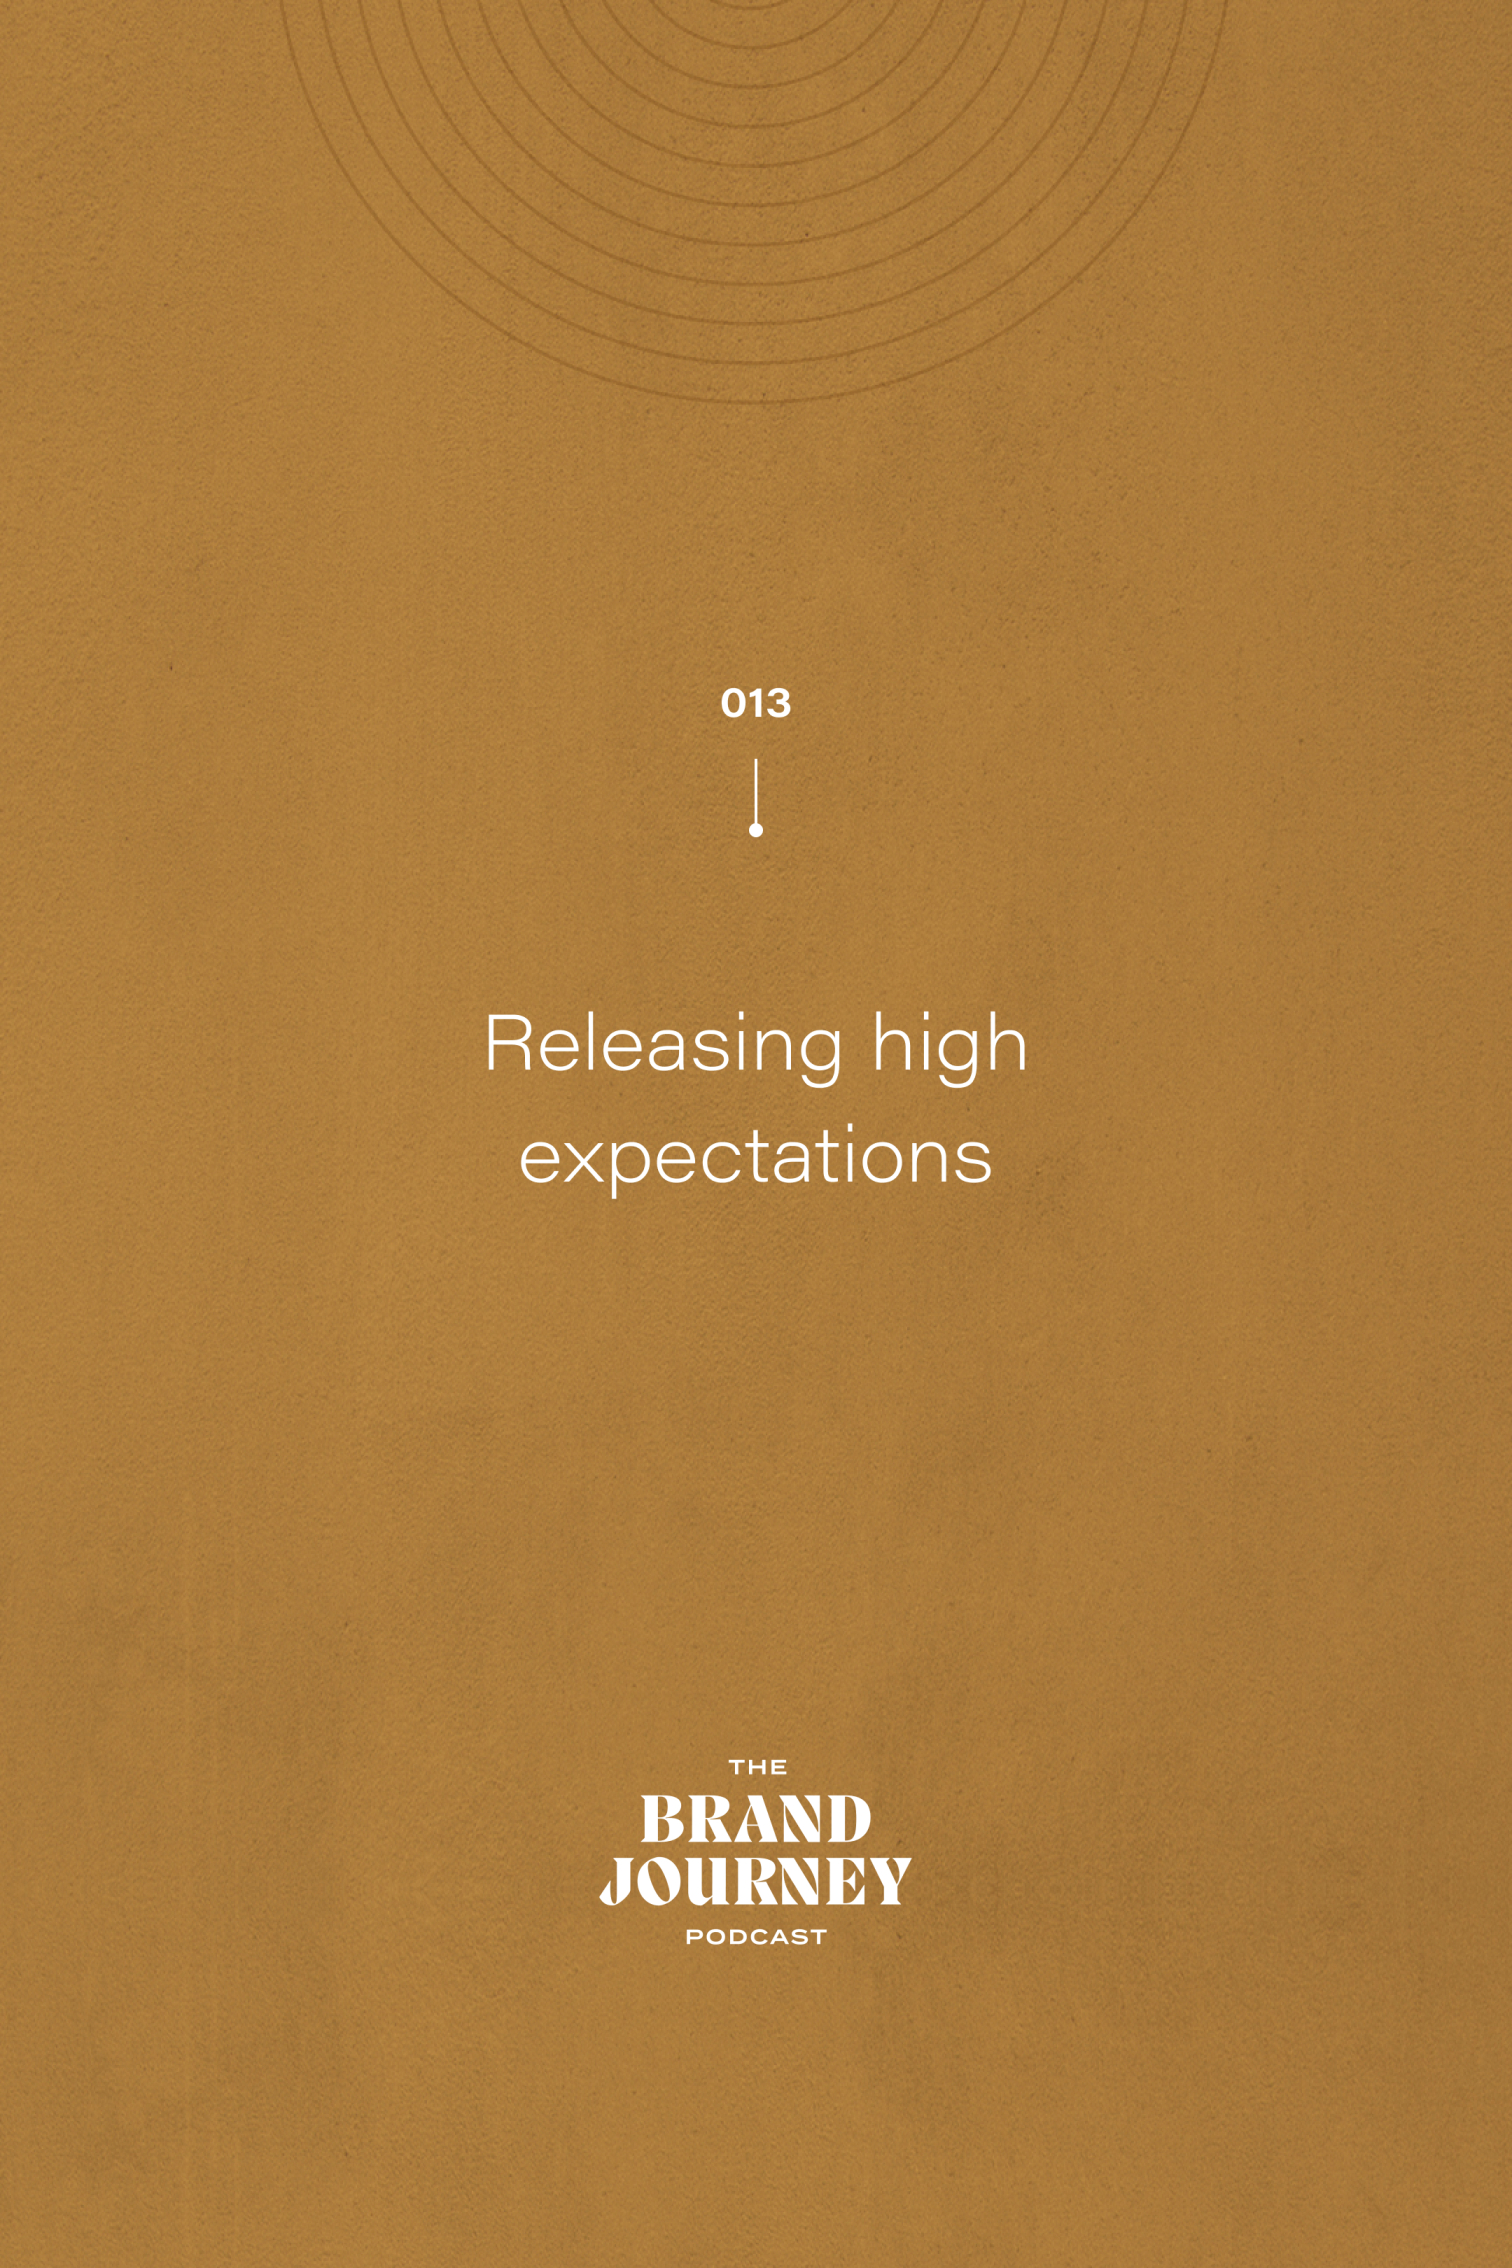 Releasing high expectations